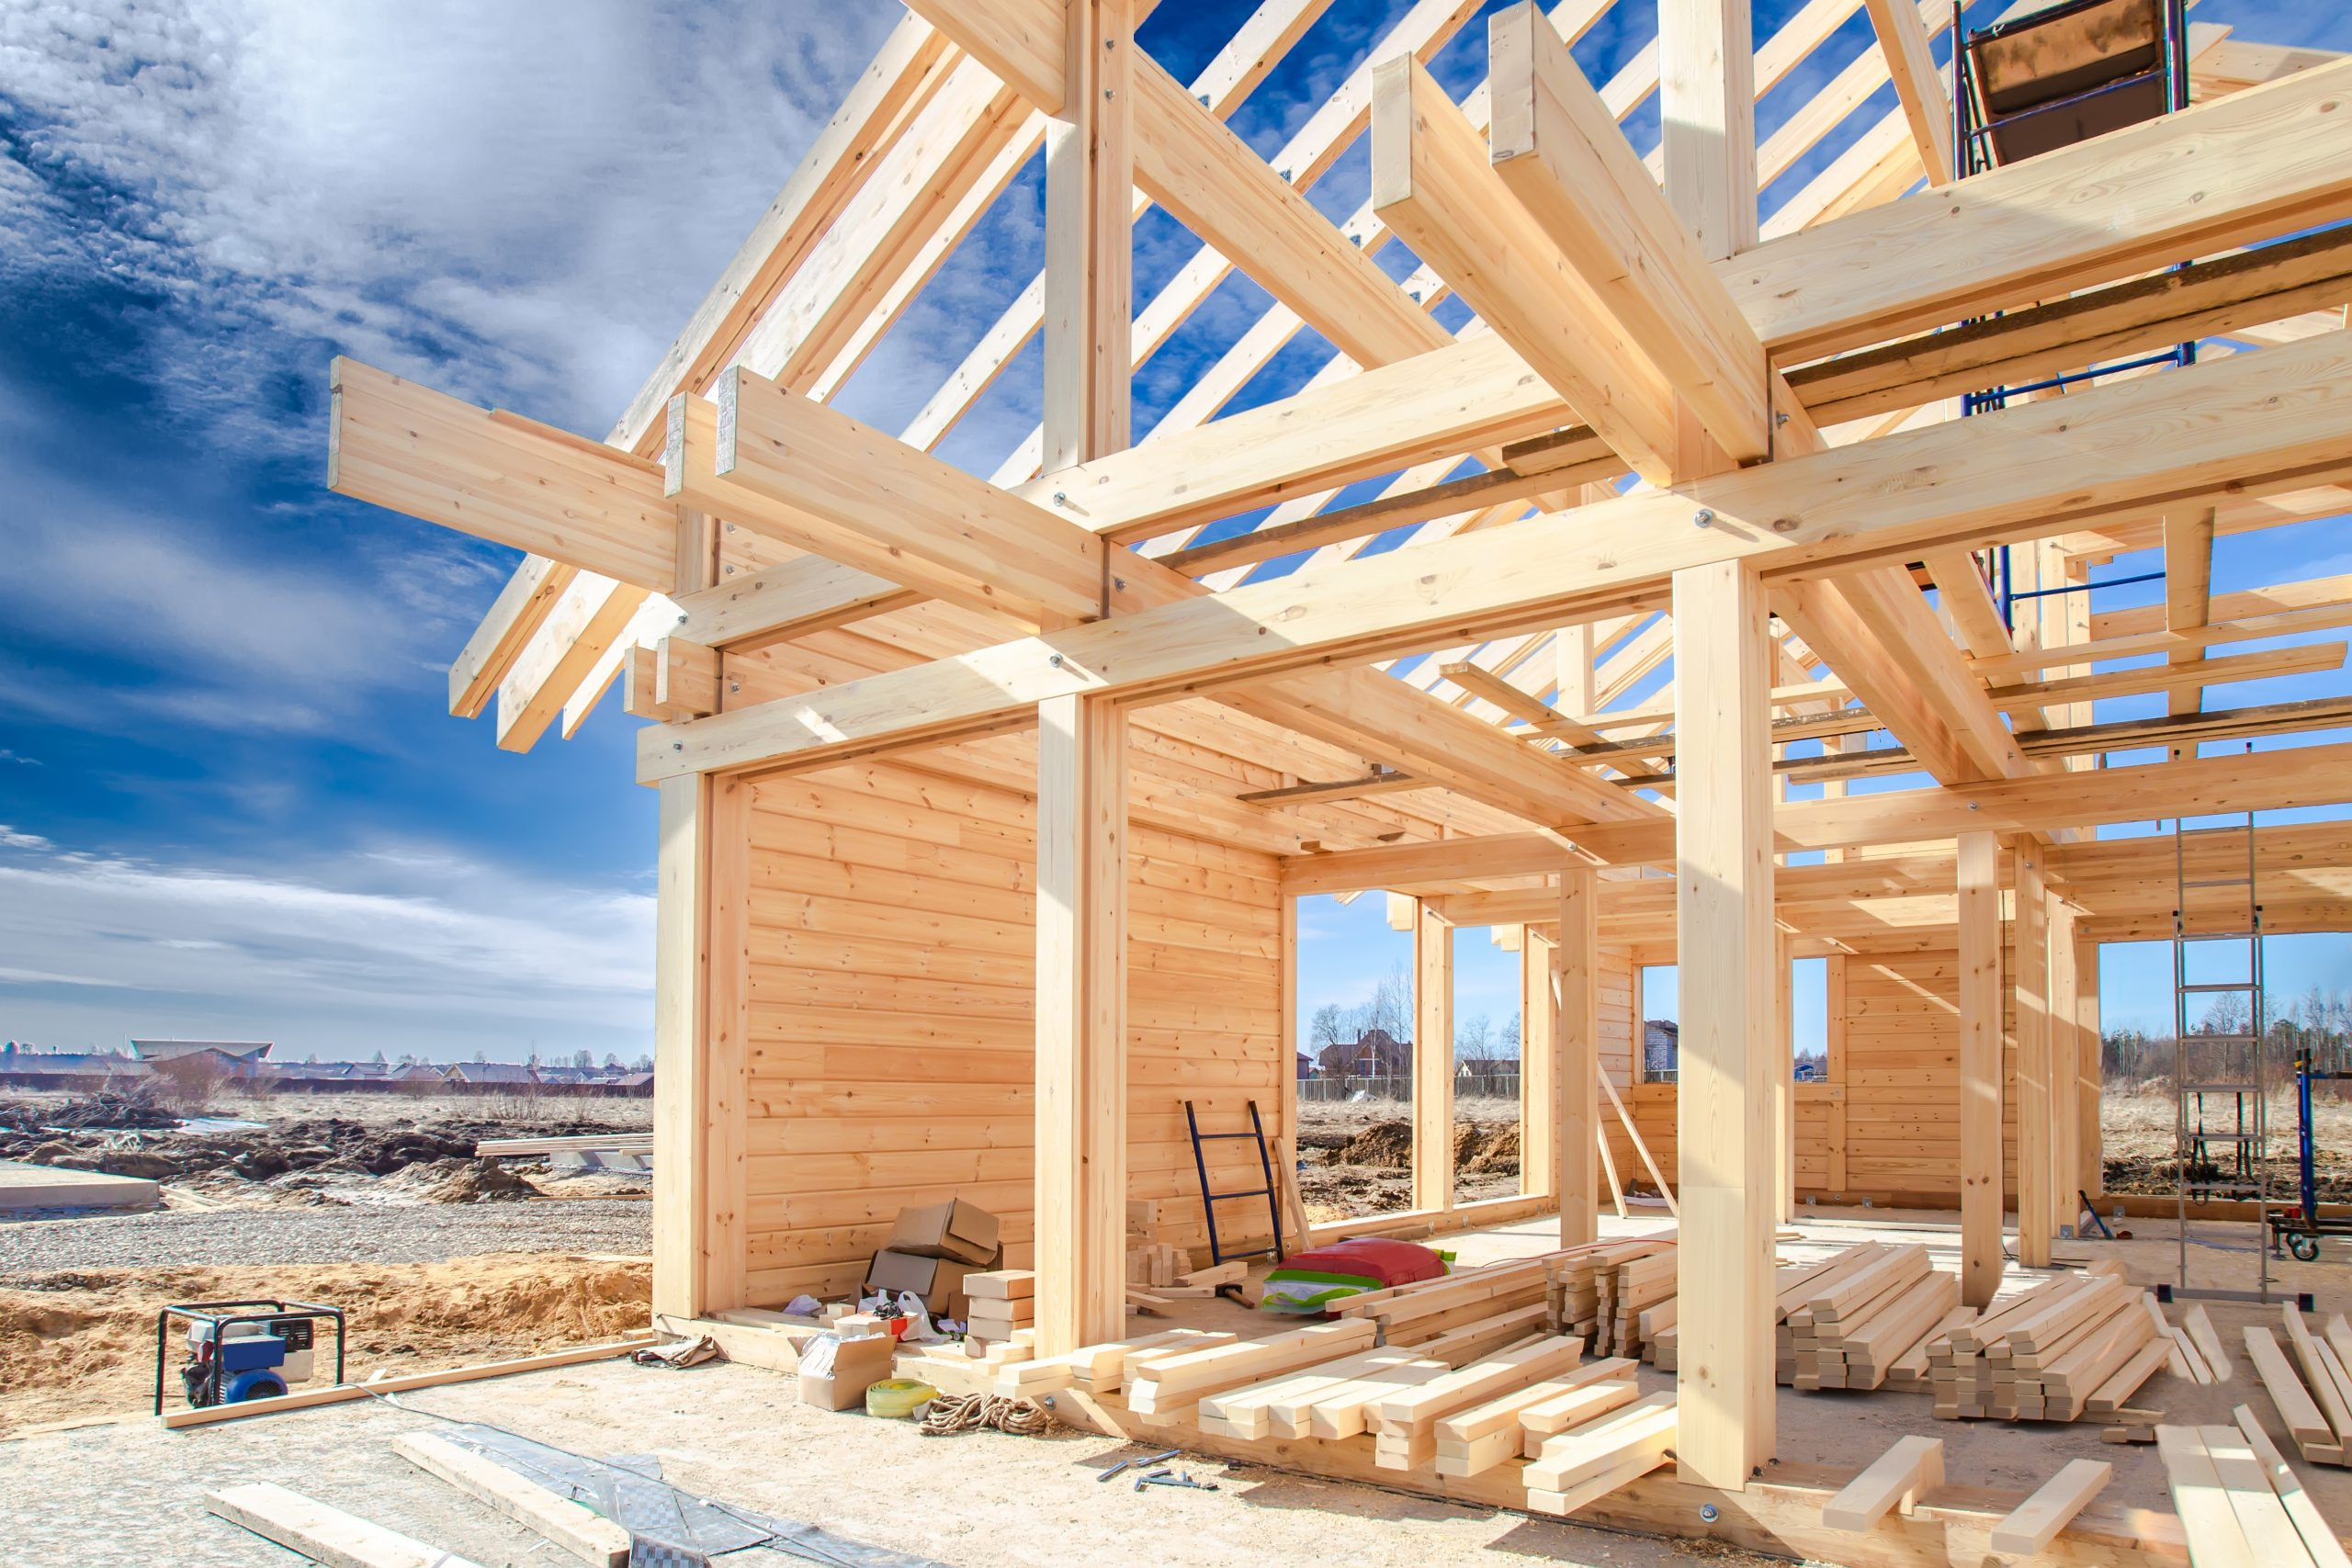 Built a cottage on the site. Construction site. Wooden frame of the home from a bar. The house wooden foundation. Building of houses under the key. Production of wooden houses.